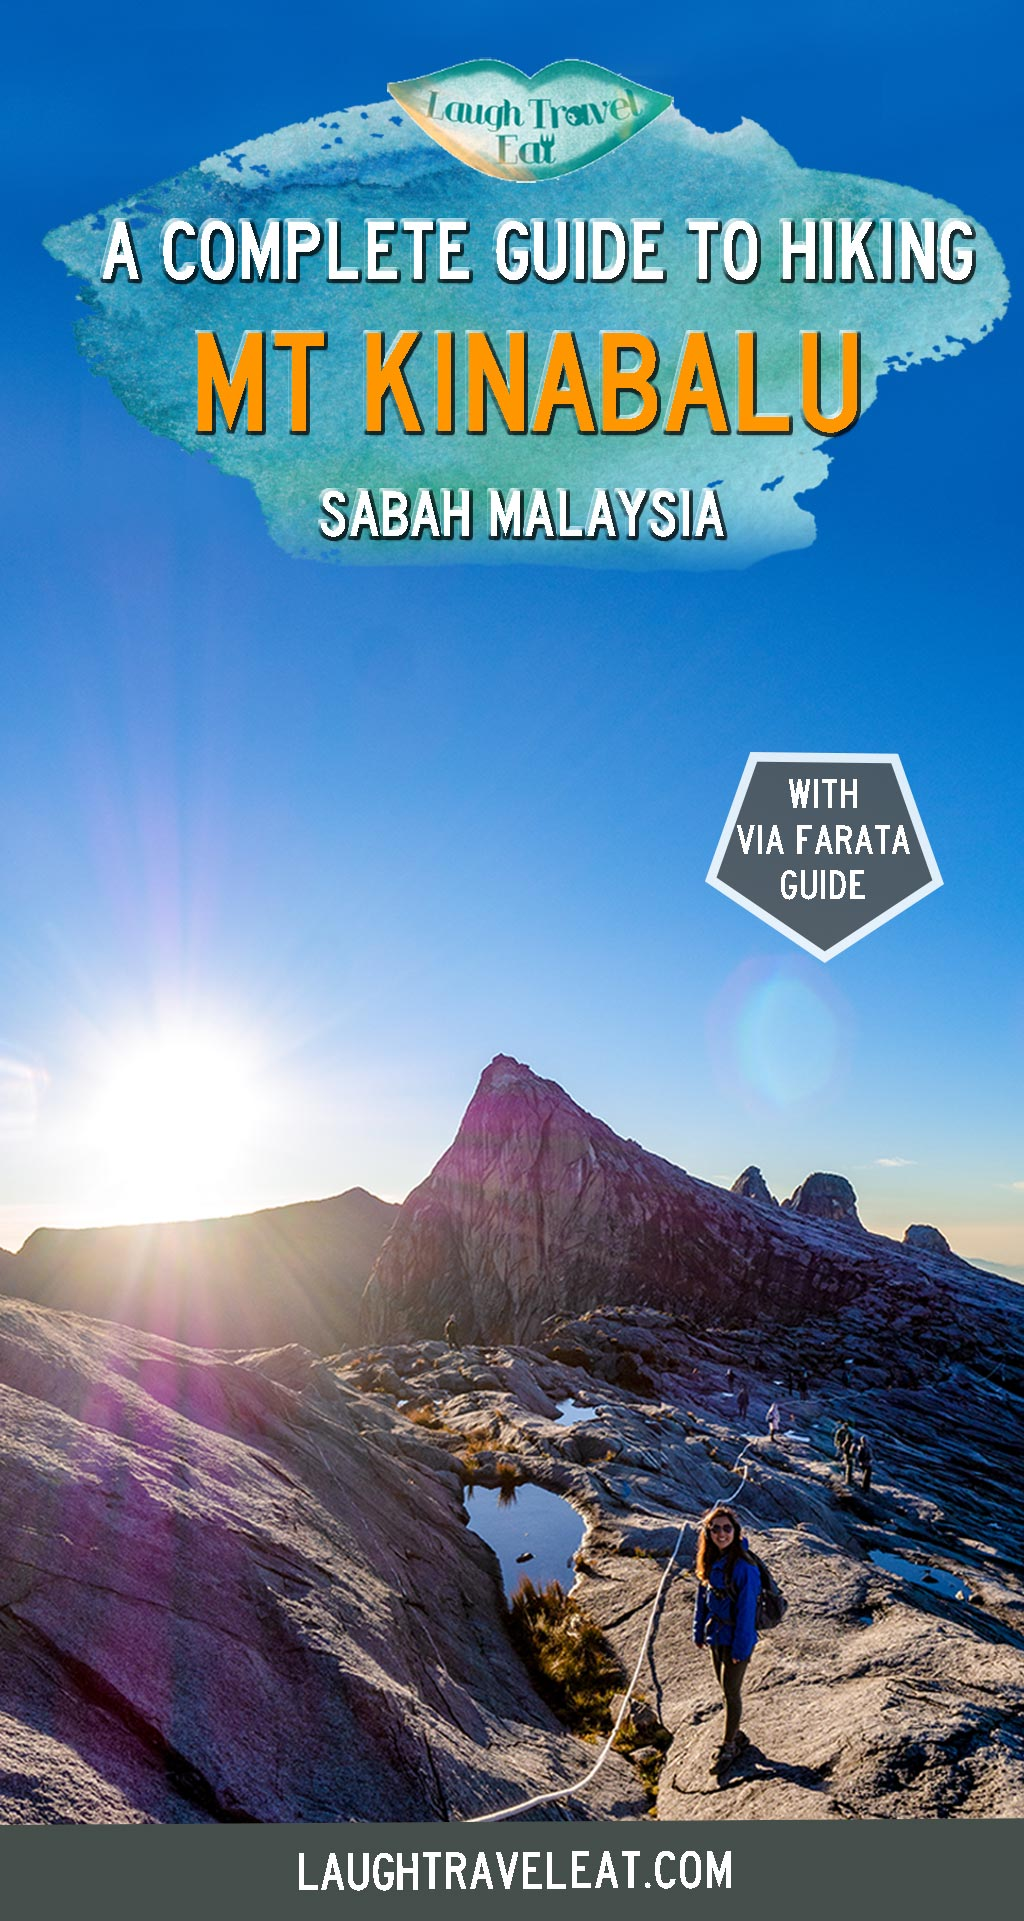 One of the most challenging two day one night hikes in Southeast Asia and the highest peak, Mount Kinabalu stands at 4095 m above sea level that takes trekkers from lush jungles to barren rock sea. Here is what you need to know about hiking Mount Kinabalu and preparing for it: #MountKinabalu #Sabah #Borneo #Malaysia